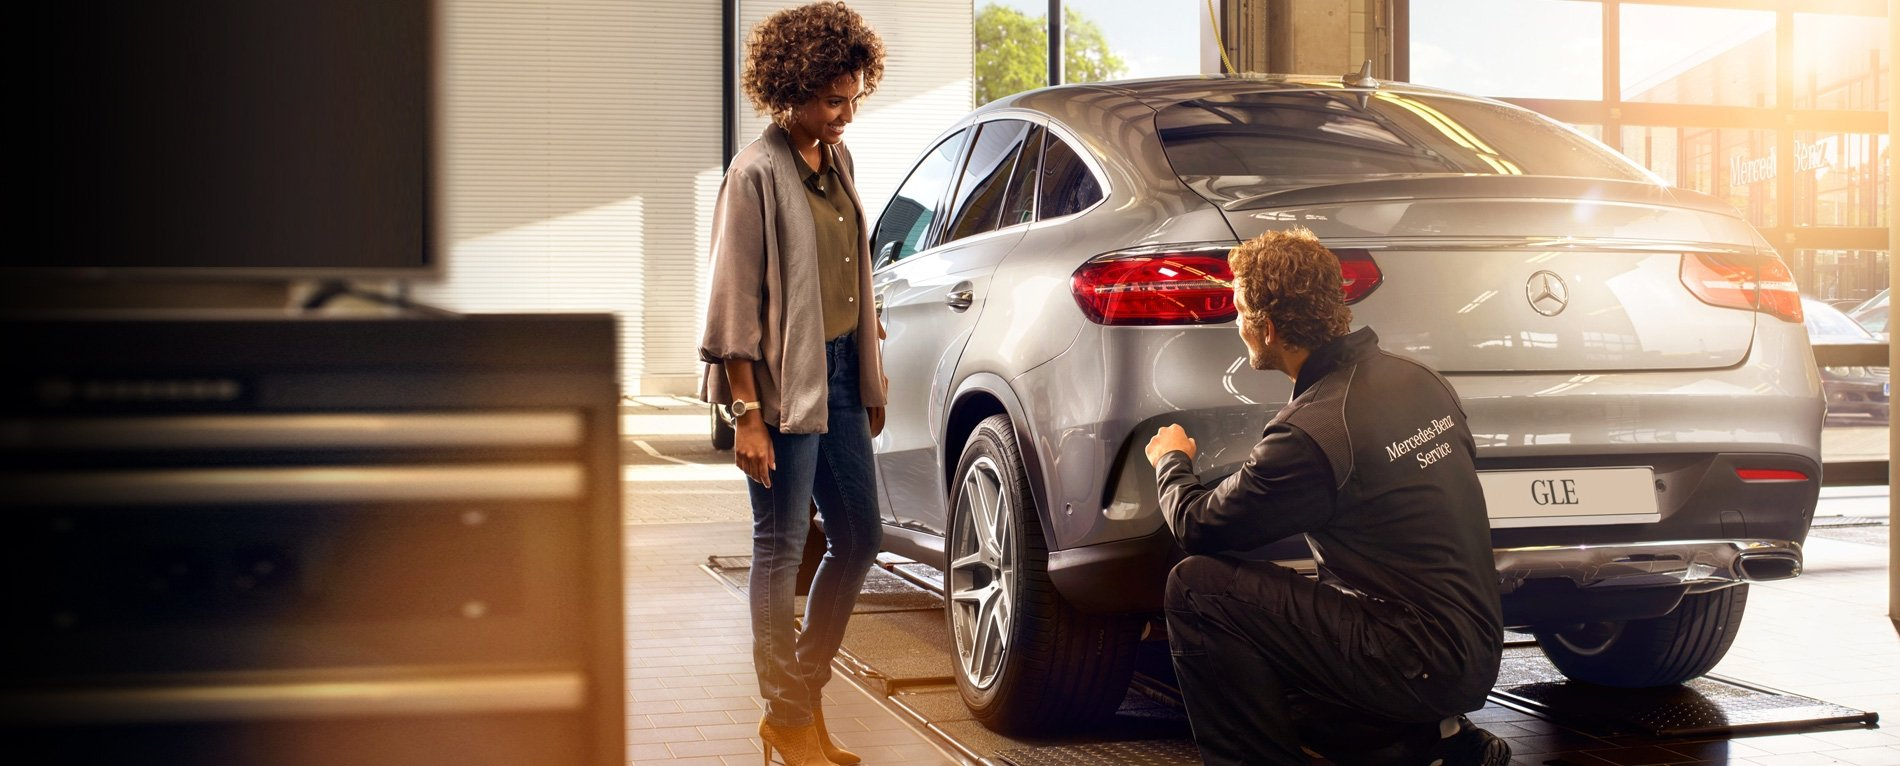 Mercedes benz service at 6120 mavis road in mississauga for Mercedes benz financial services phone number